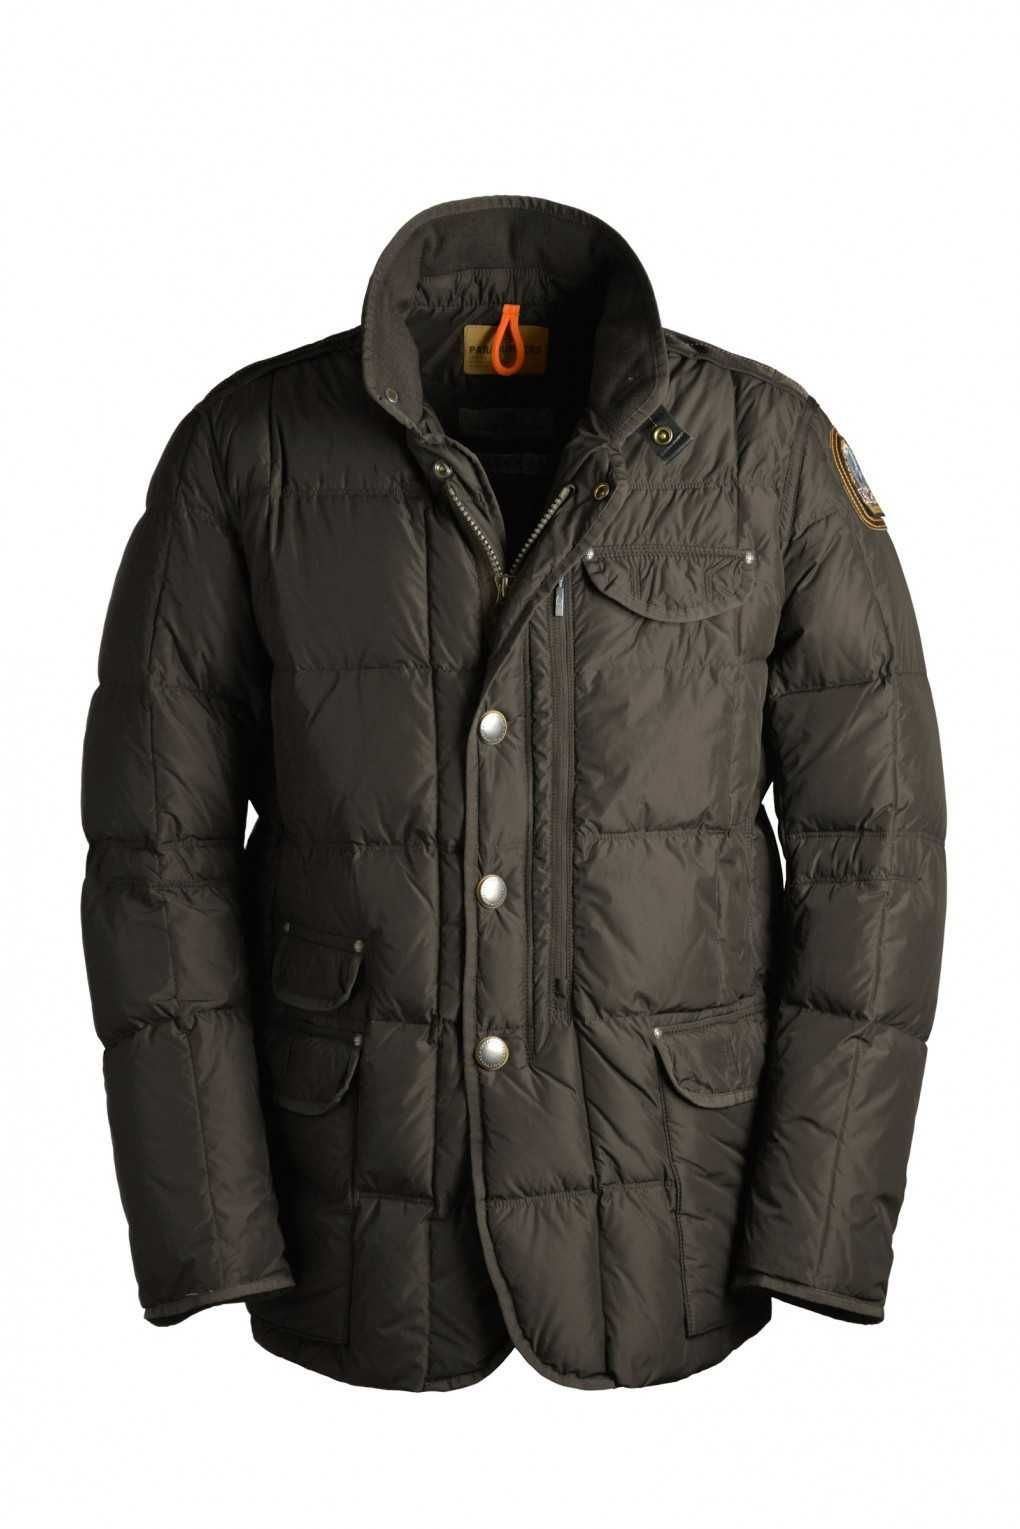 Parajumpers Sale Factory Outlet,Big Discount From Original Parajumpers Sale Usa UK! Wholesale Parajumper